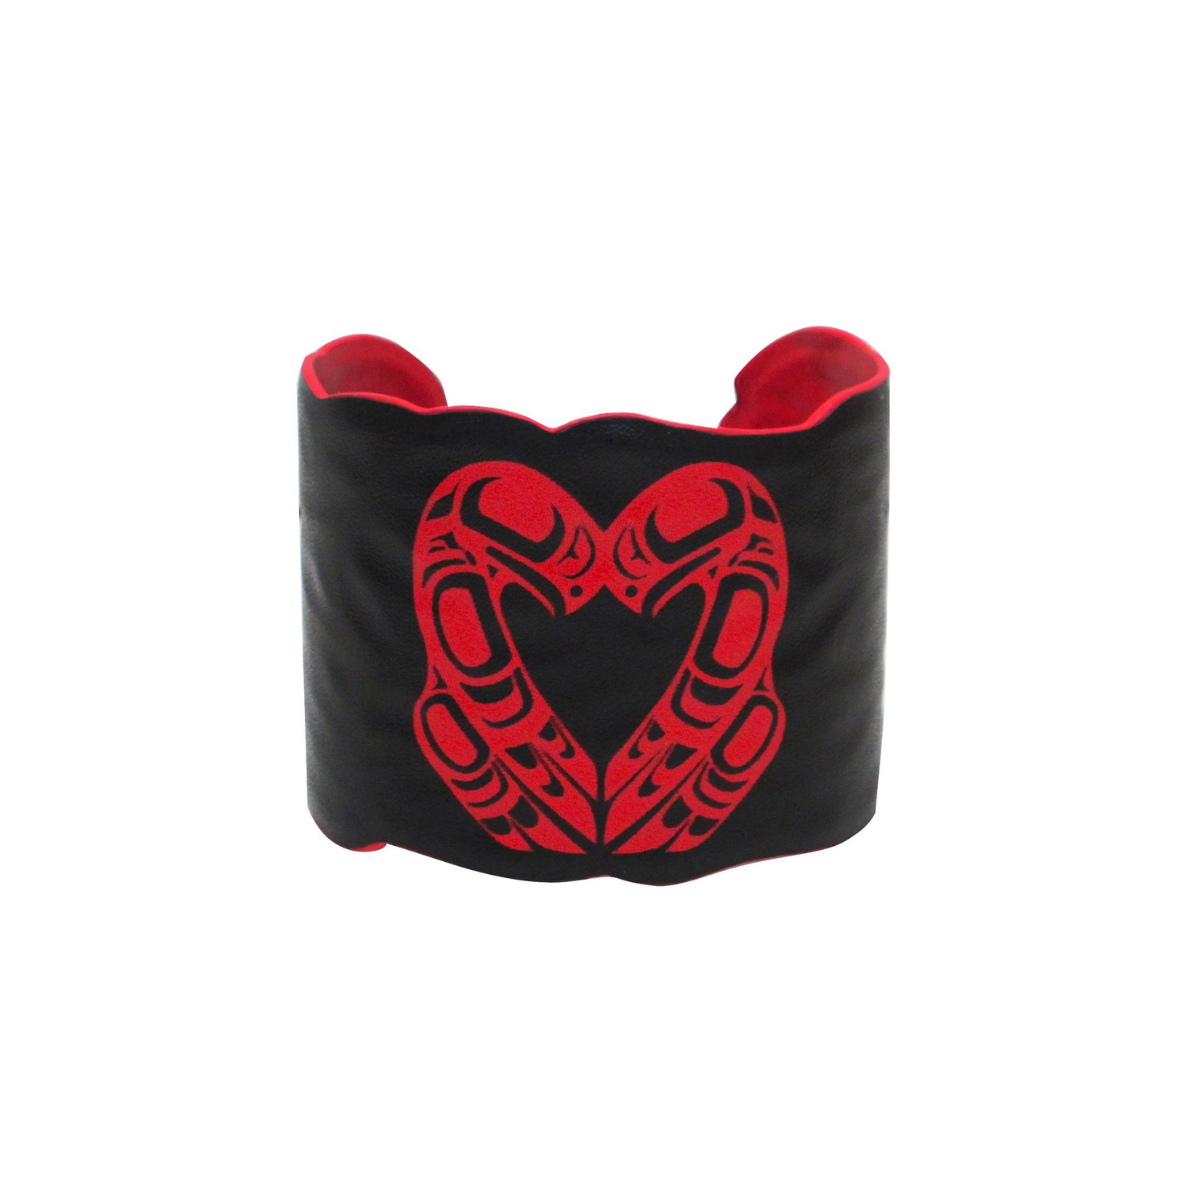 Vegan Leather Cuff - Eagle Heart by Roy Henry Vickers